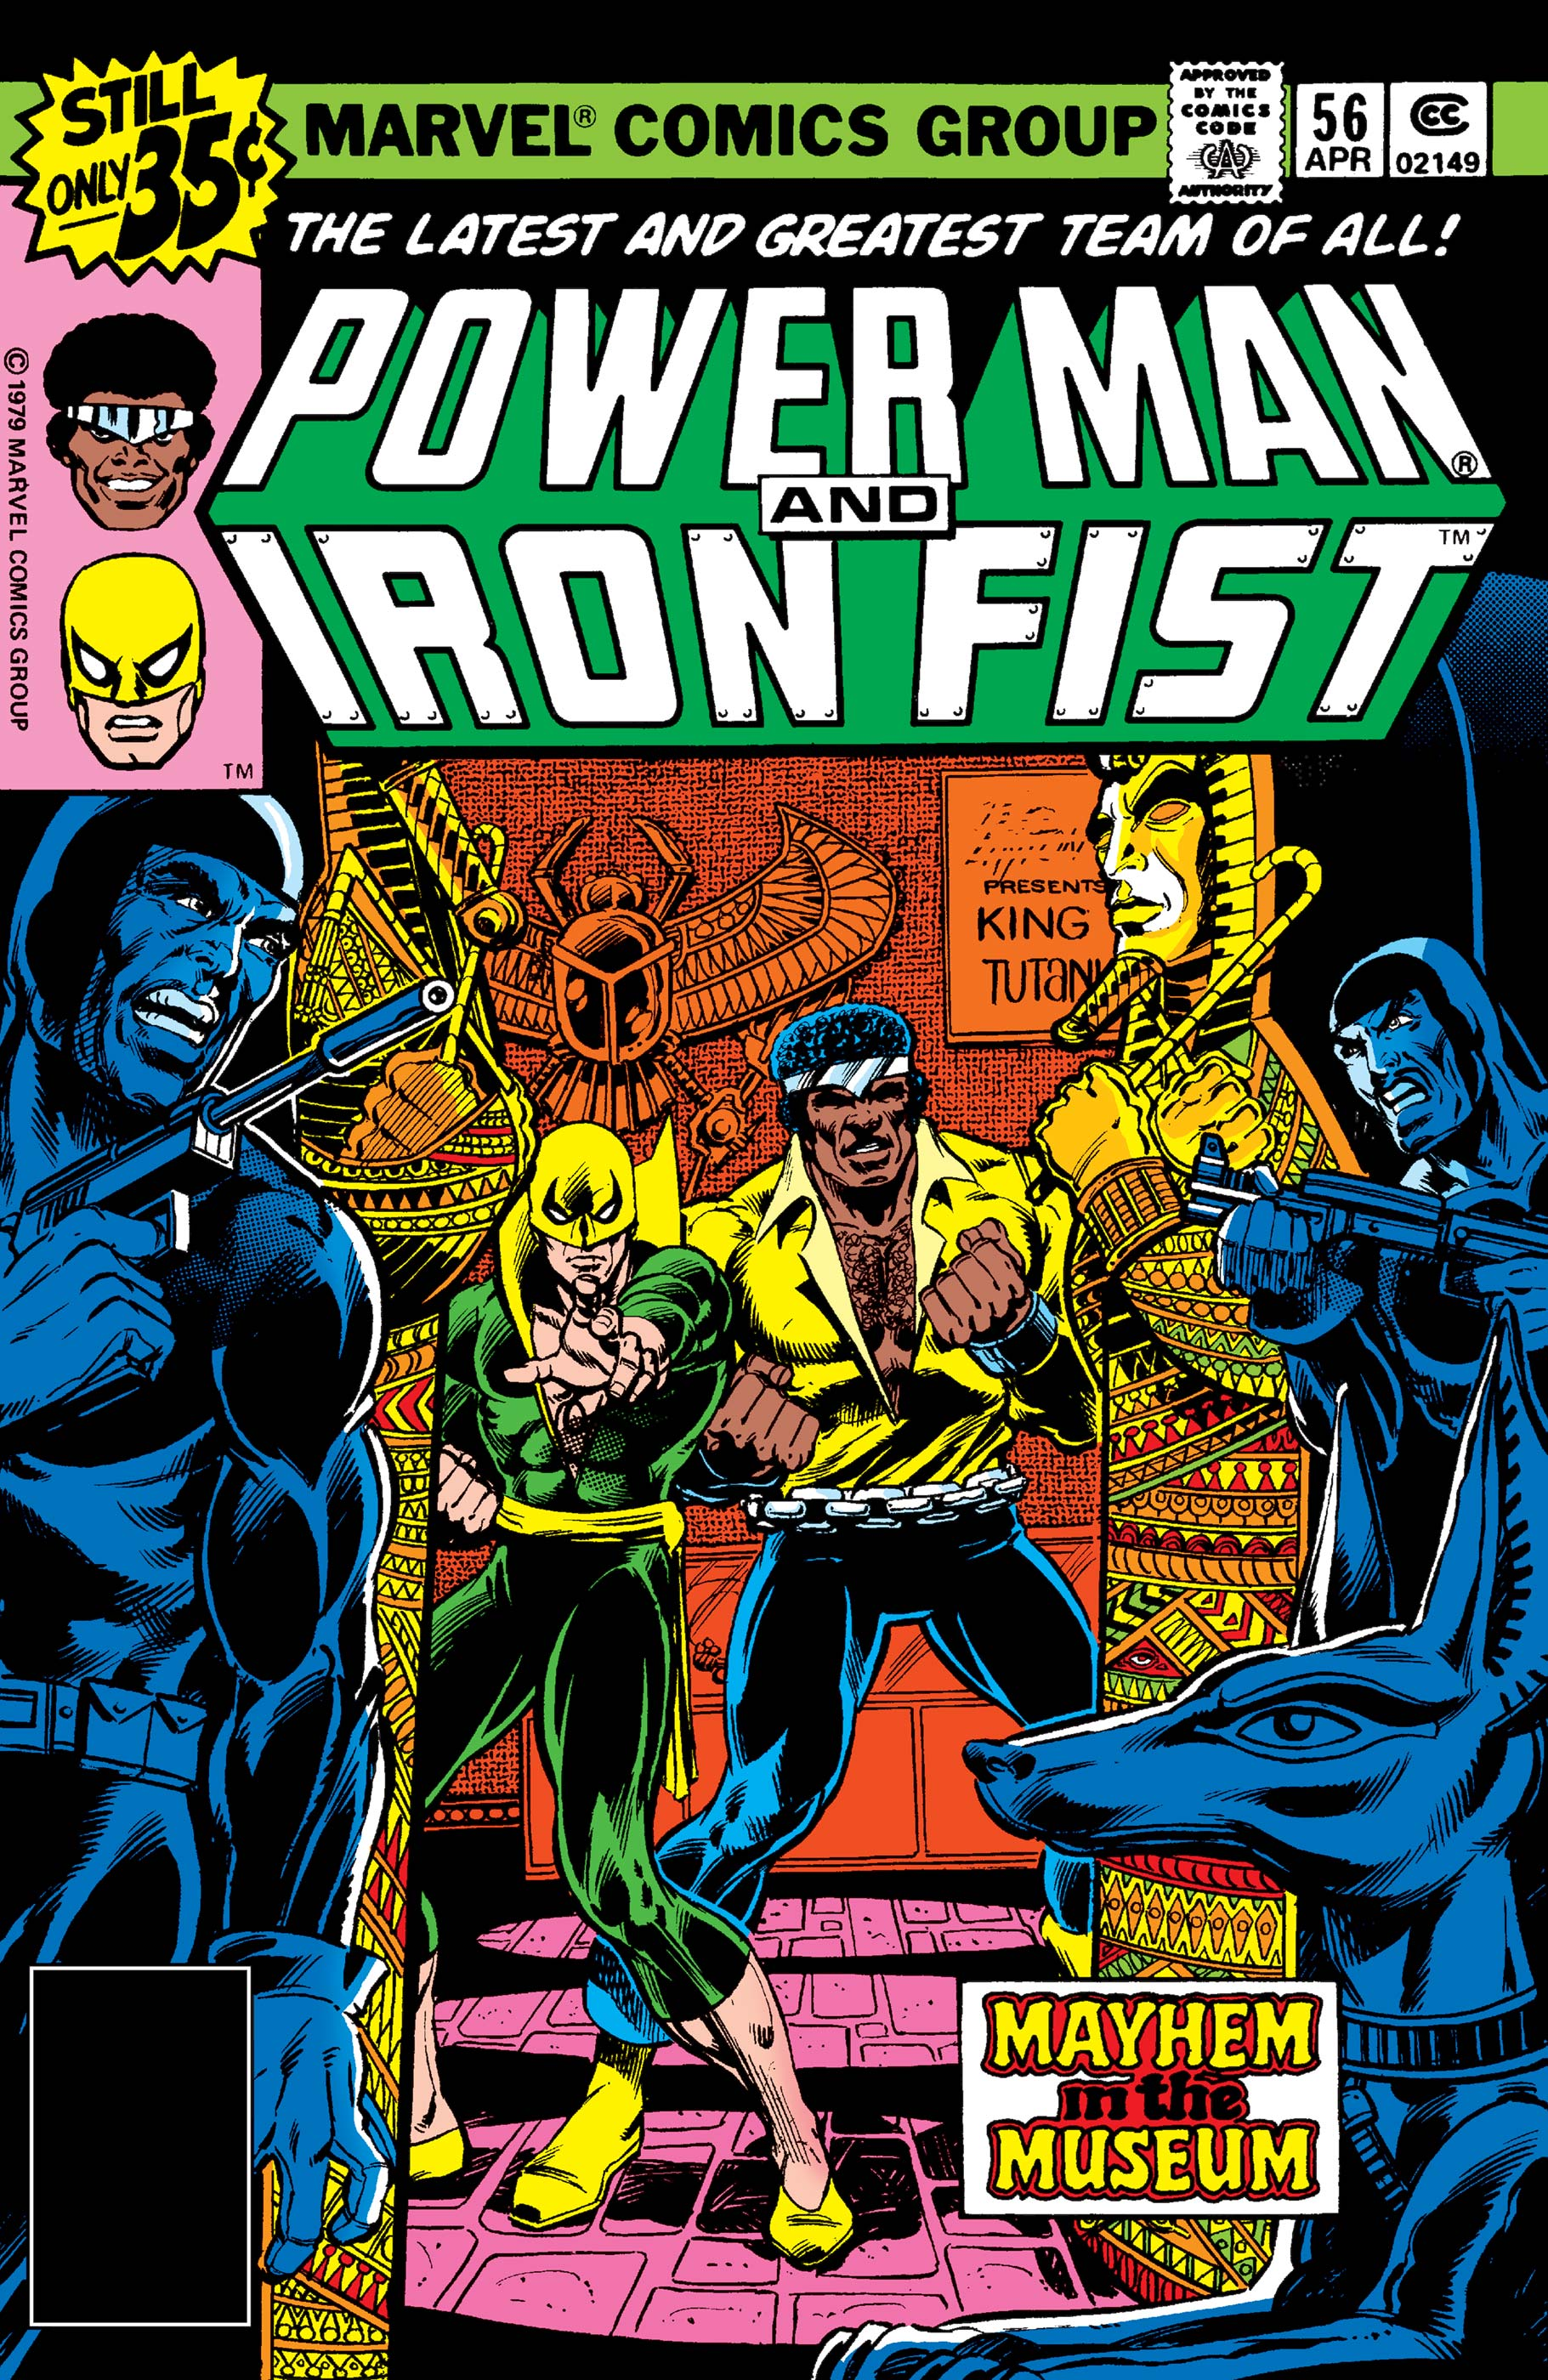 Power Man and Iron Fist (1978) #56